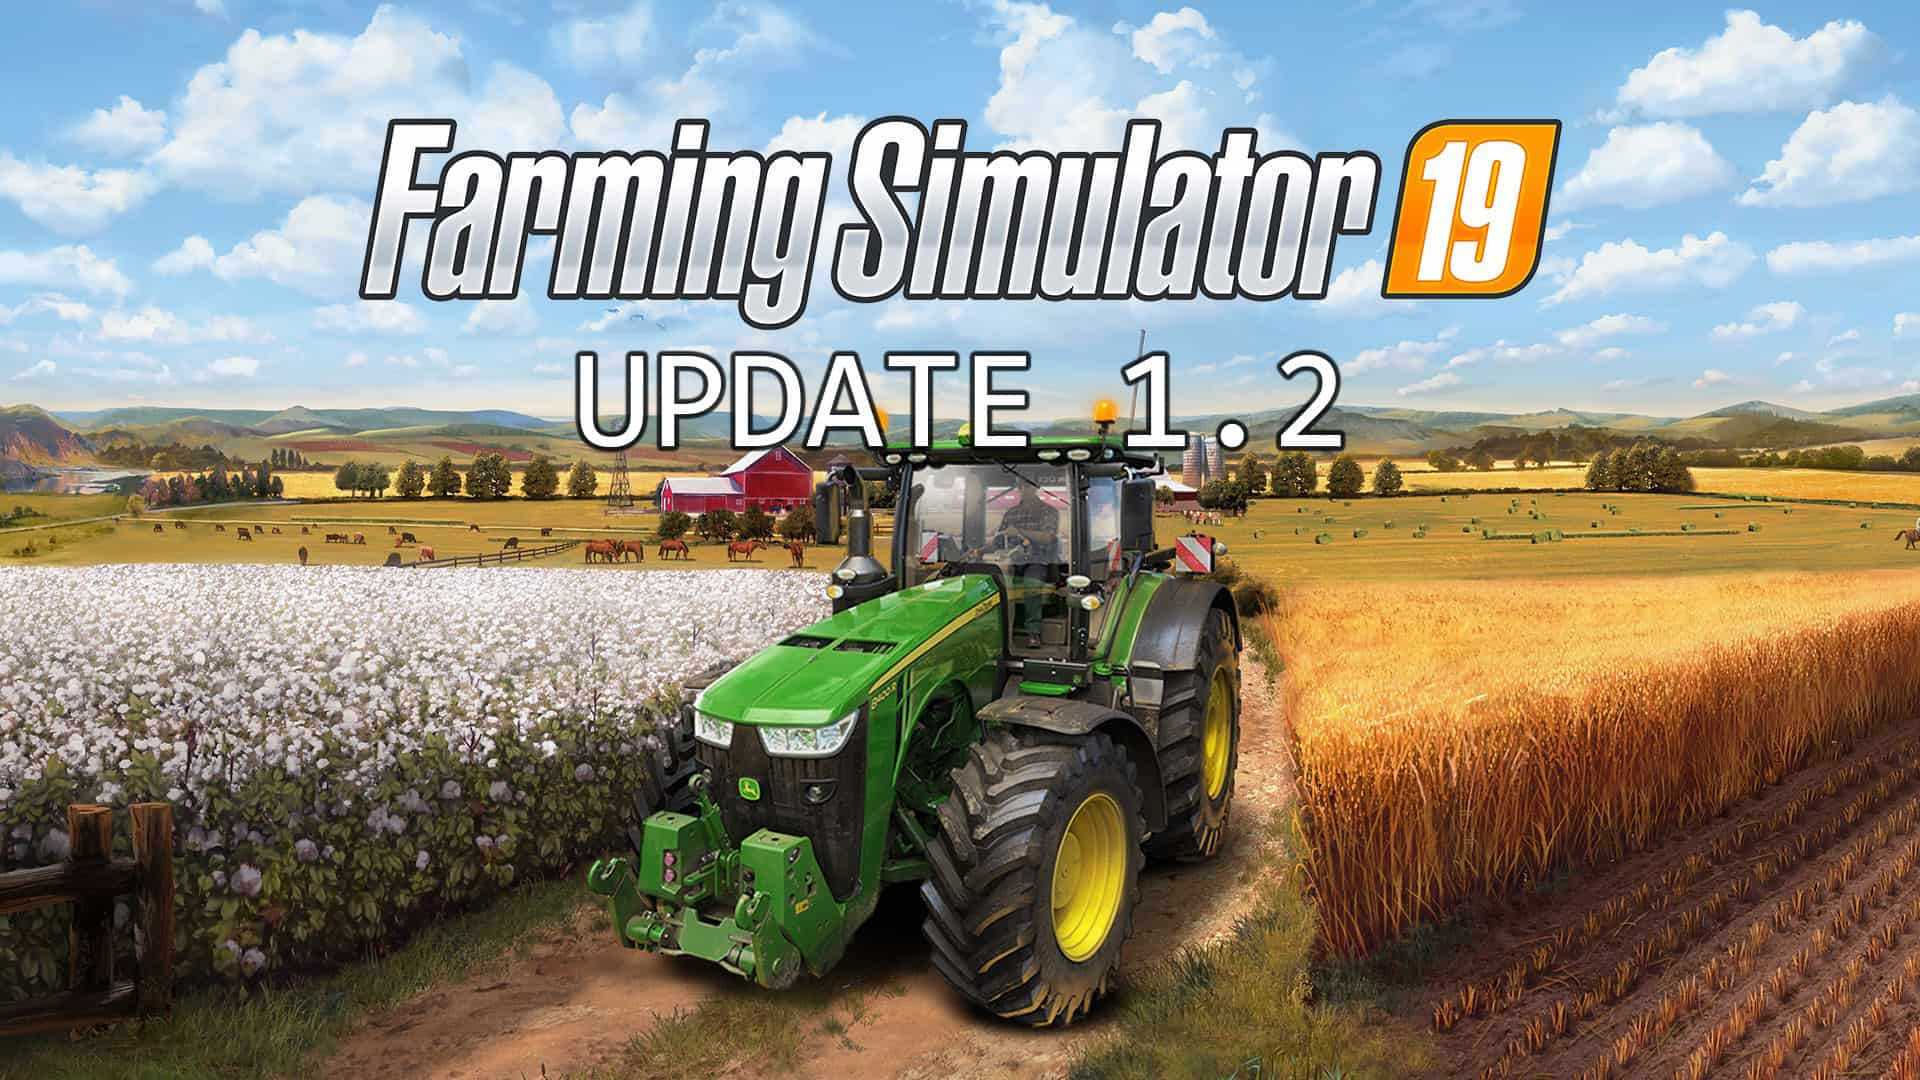 Farming Simulator 19 - Update 1 2 - Farming Simulator 19 Mod